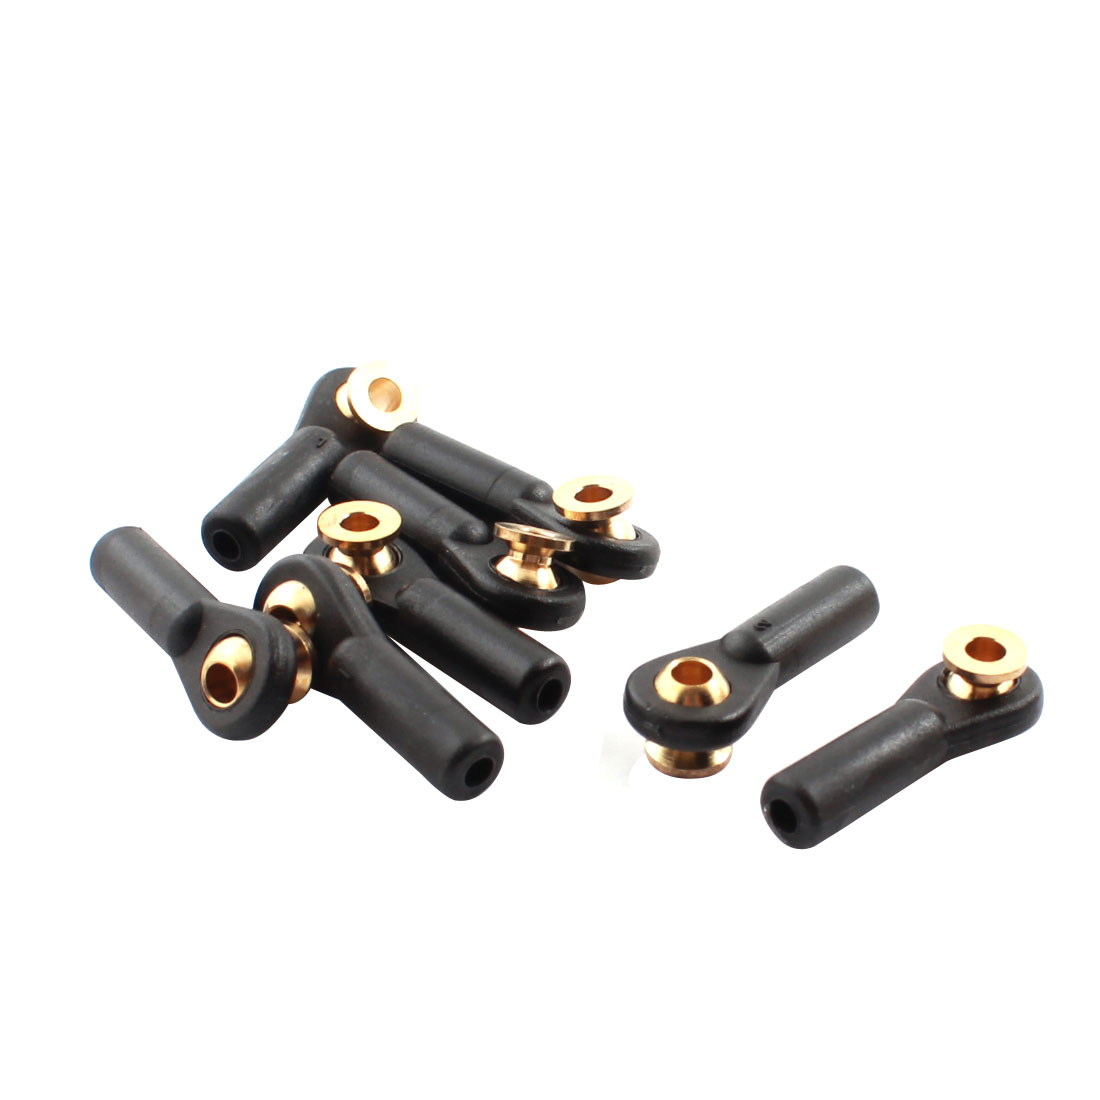 8Pcs RC Car Spare Parts Tie Rod Ends Brass Ball Link 3x3x27mm